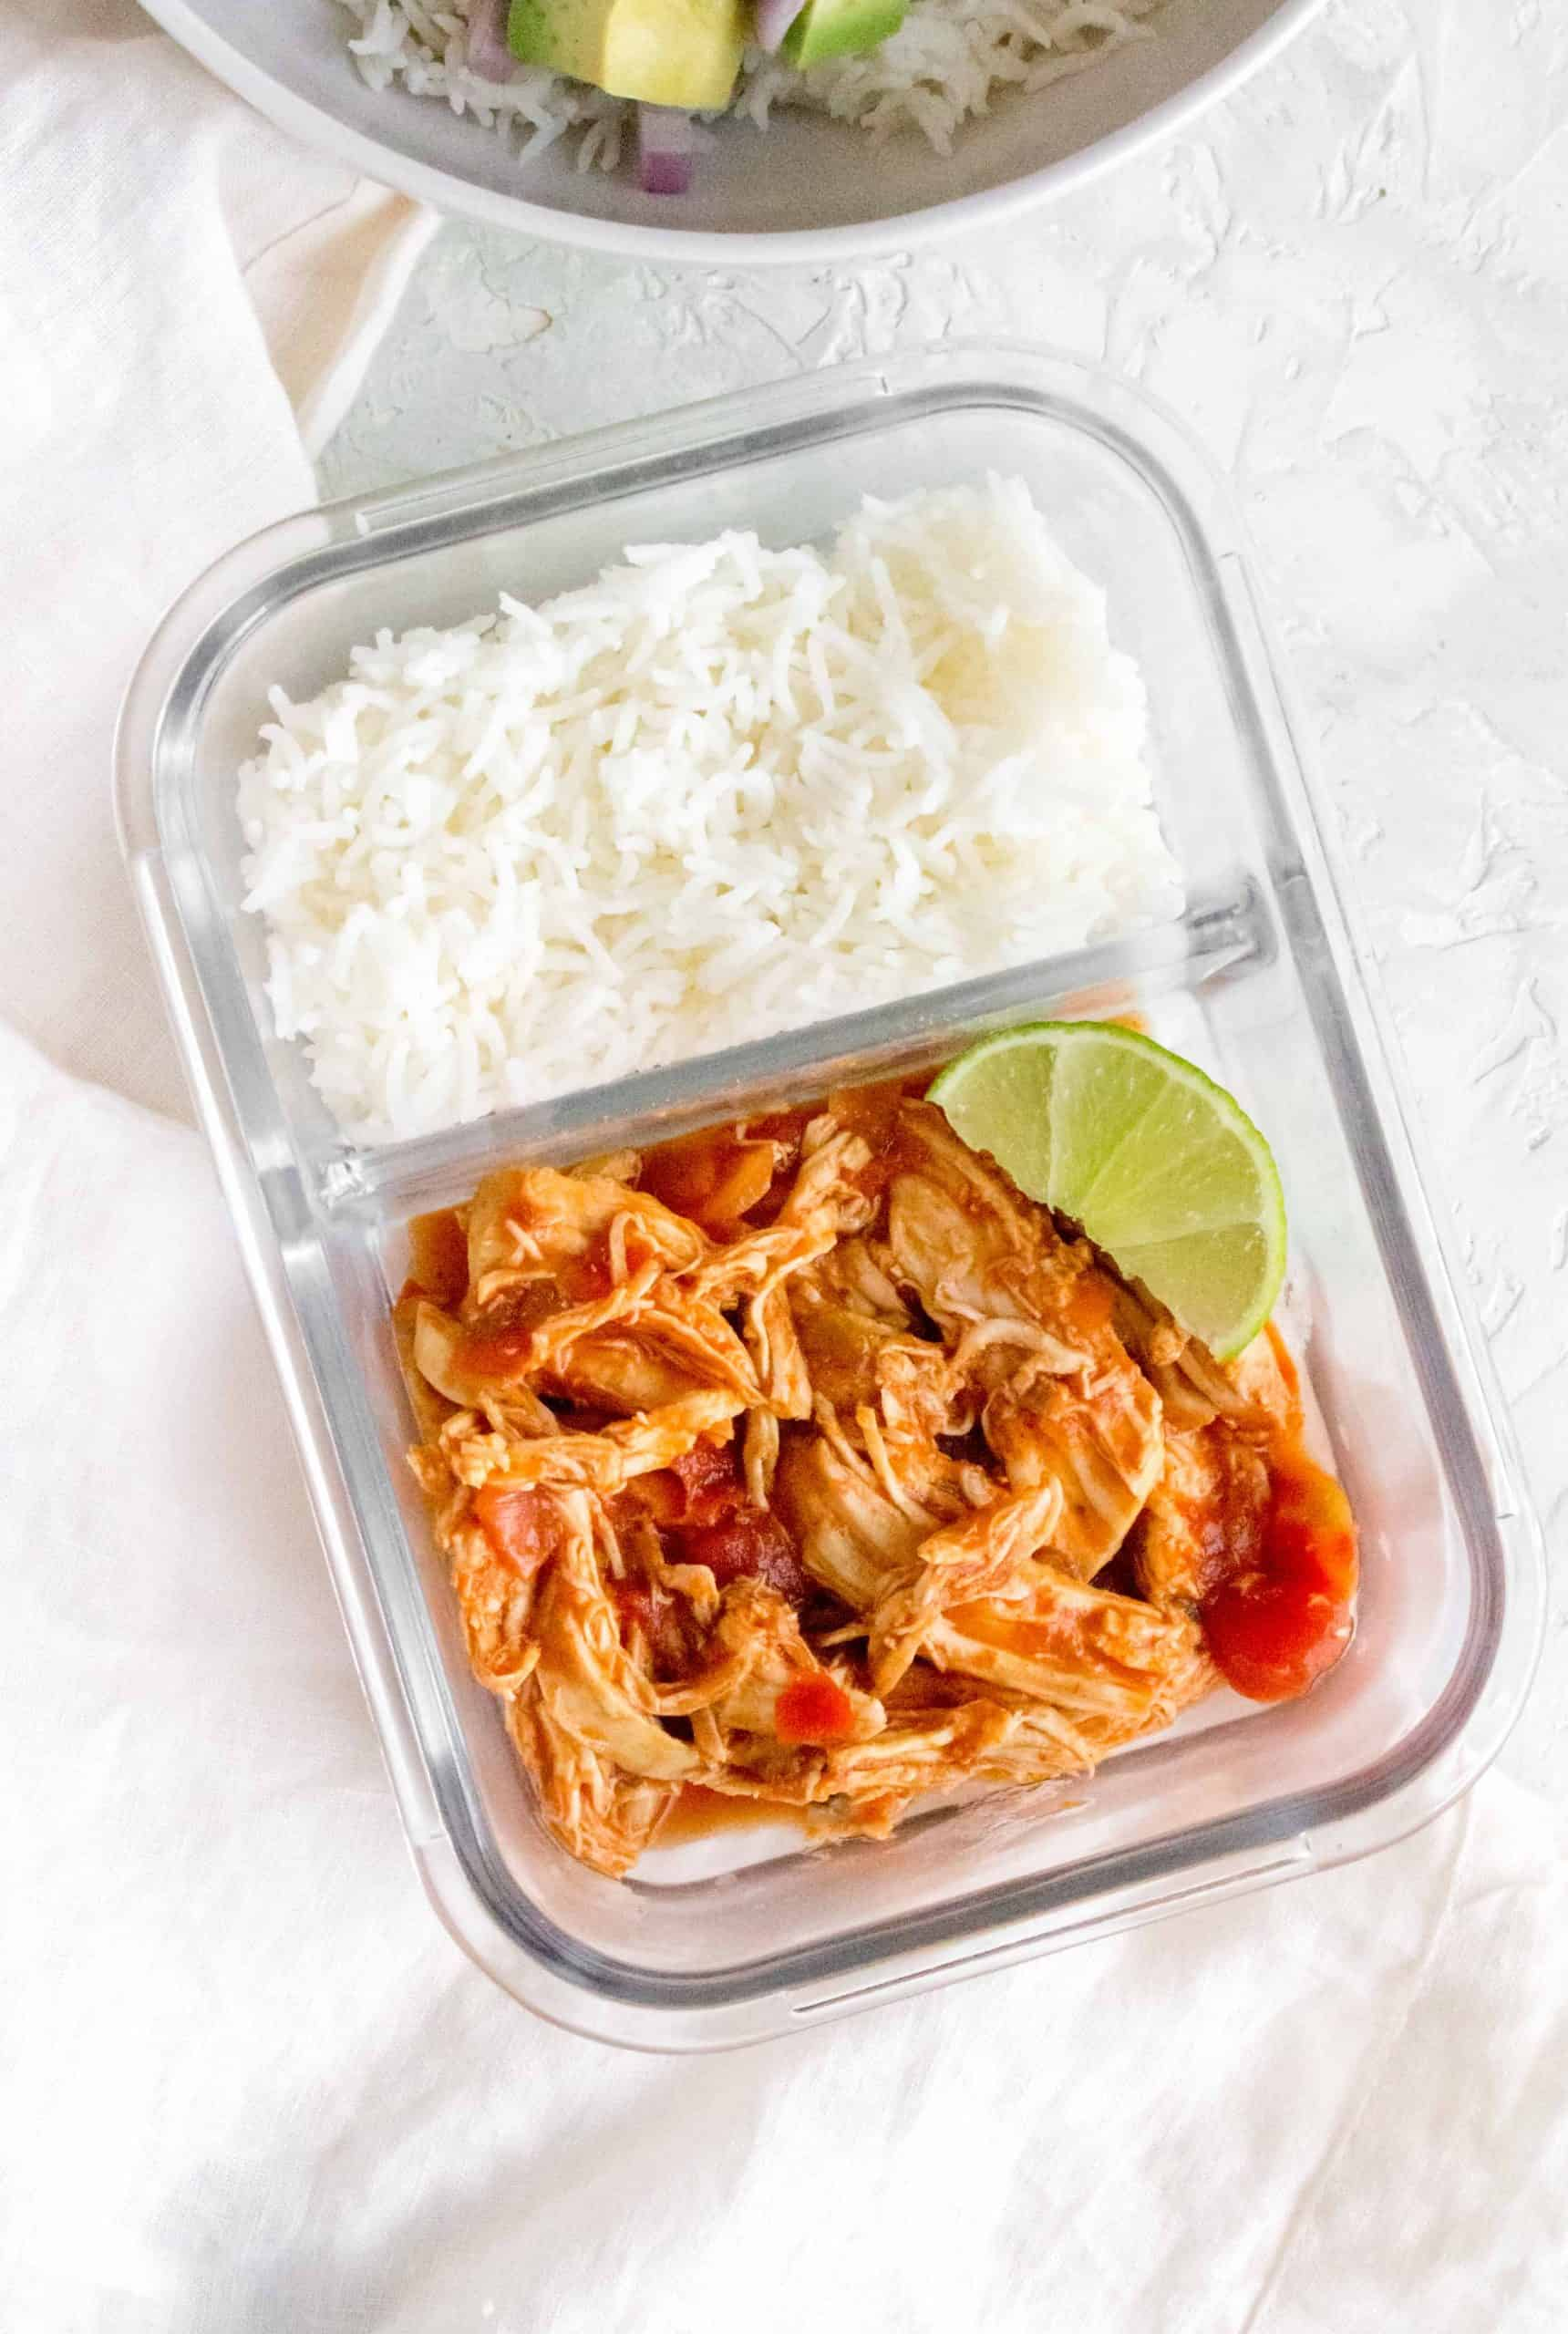 saucy shredded chicken in a glass meal prep container with some rice